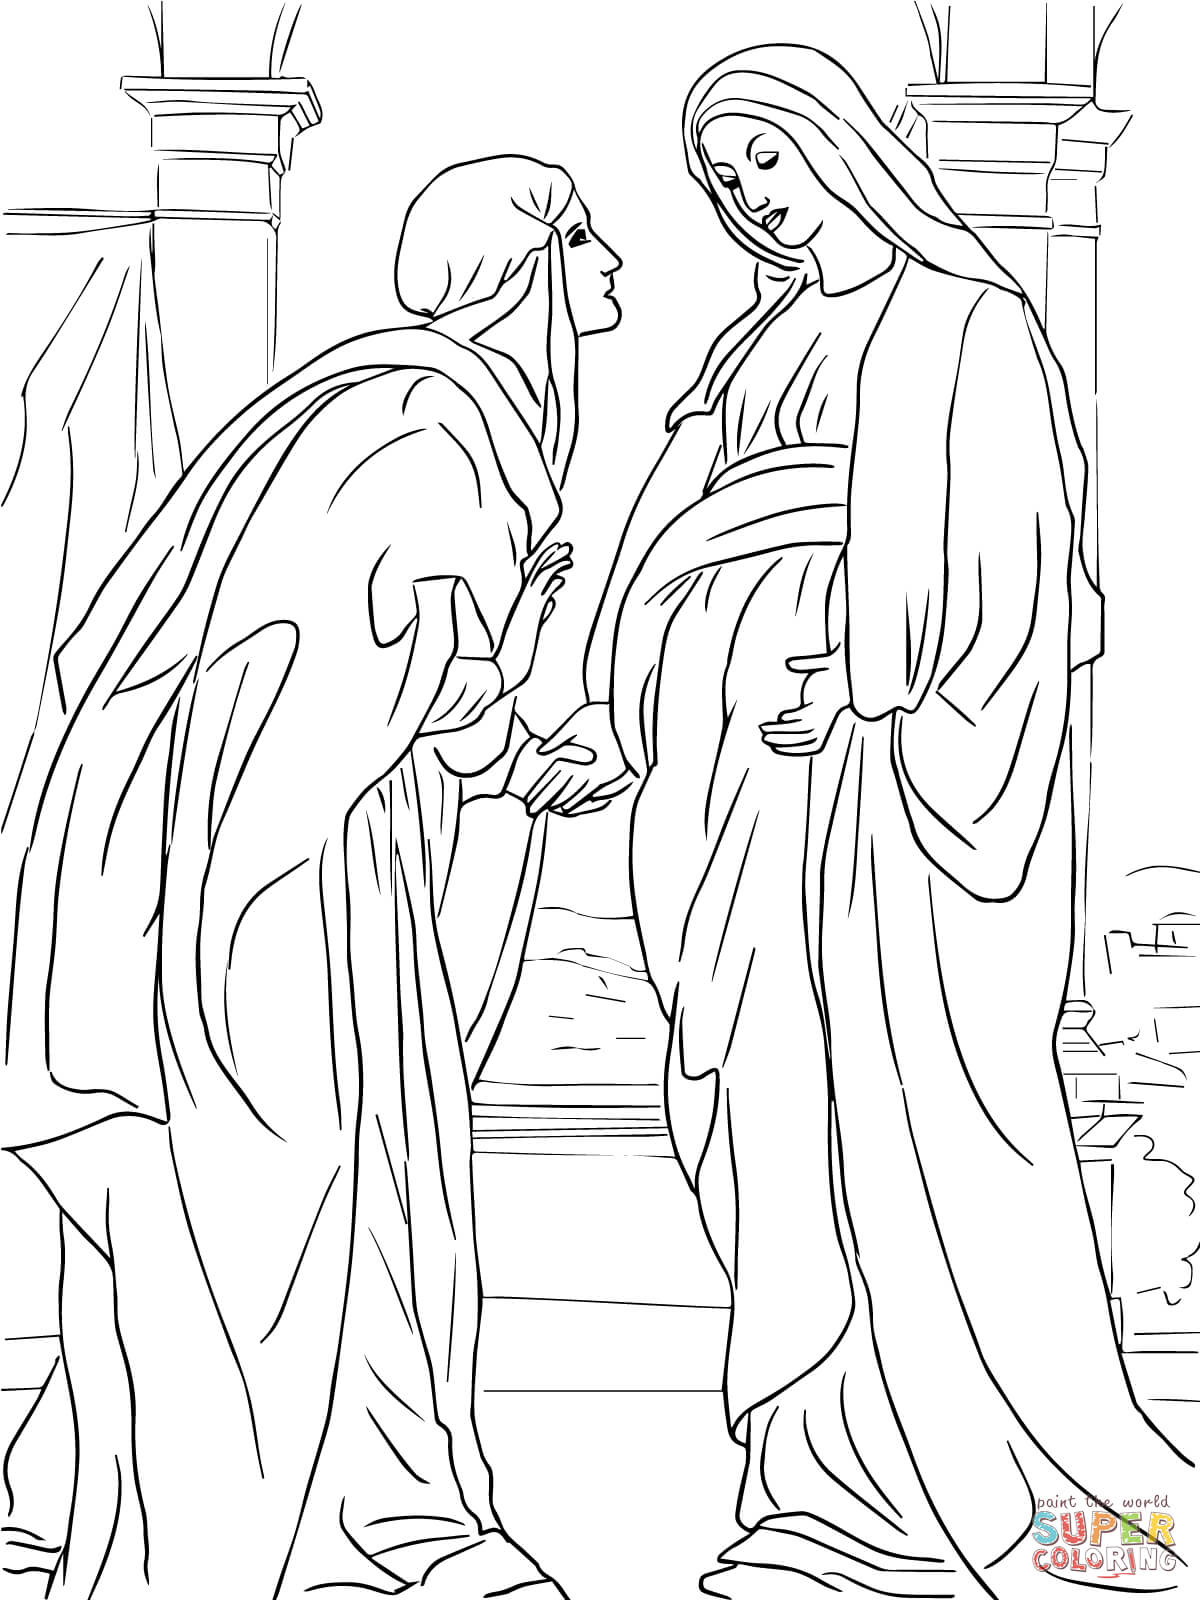 mary and elizabeth coloring pages mary and elizabeth coloring page at getcoloringscom coloring mary elizabeth pages and